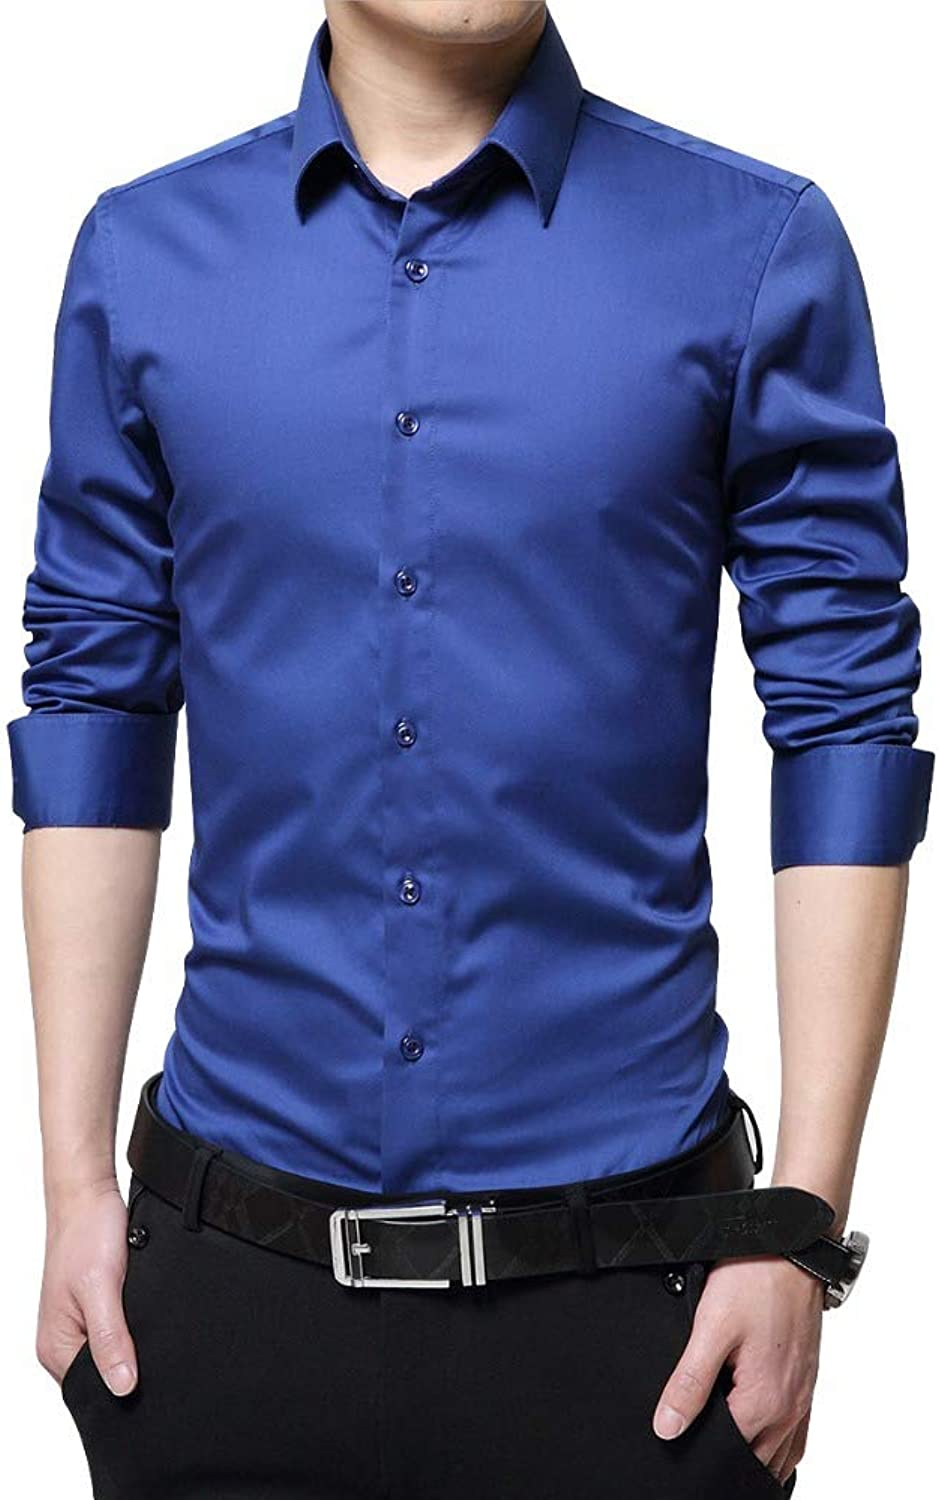 DUXIGJCD Brand Men Dress Shirts Mercerized Cotton Solid color Slim Fit Long Sleeve Silk Shirt Smooth Mens Shirts Big